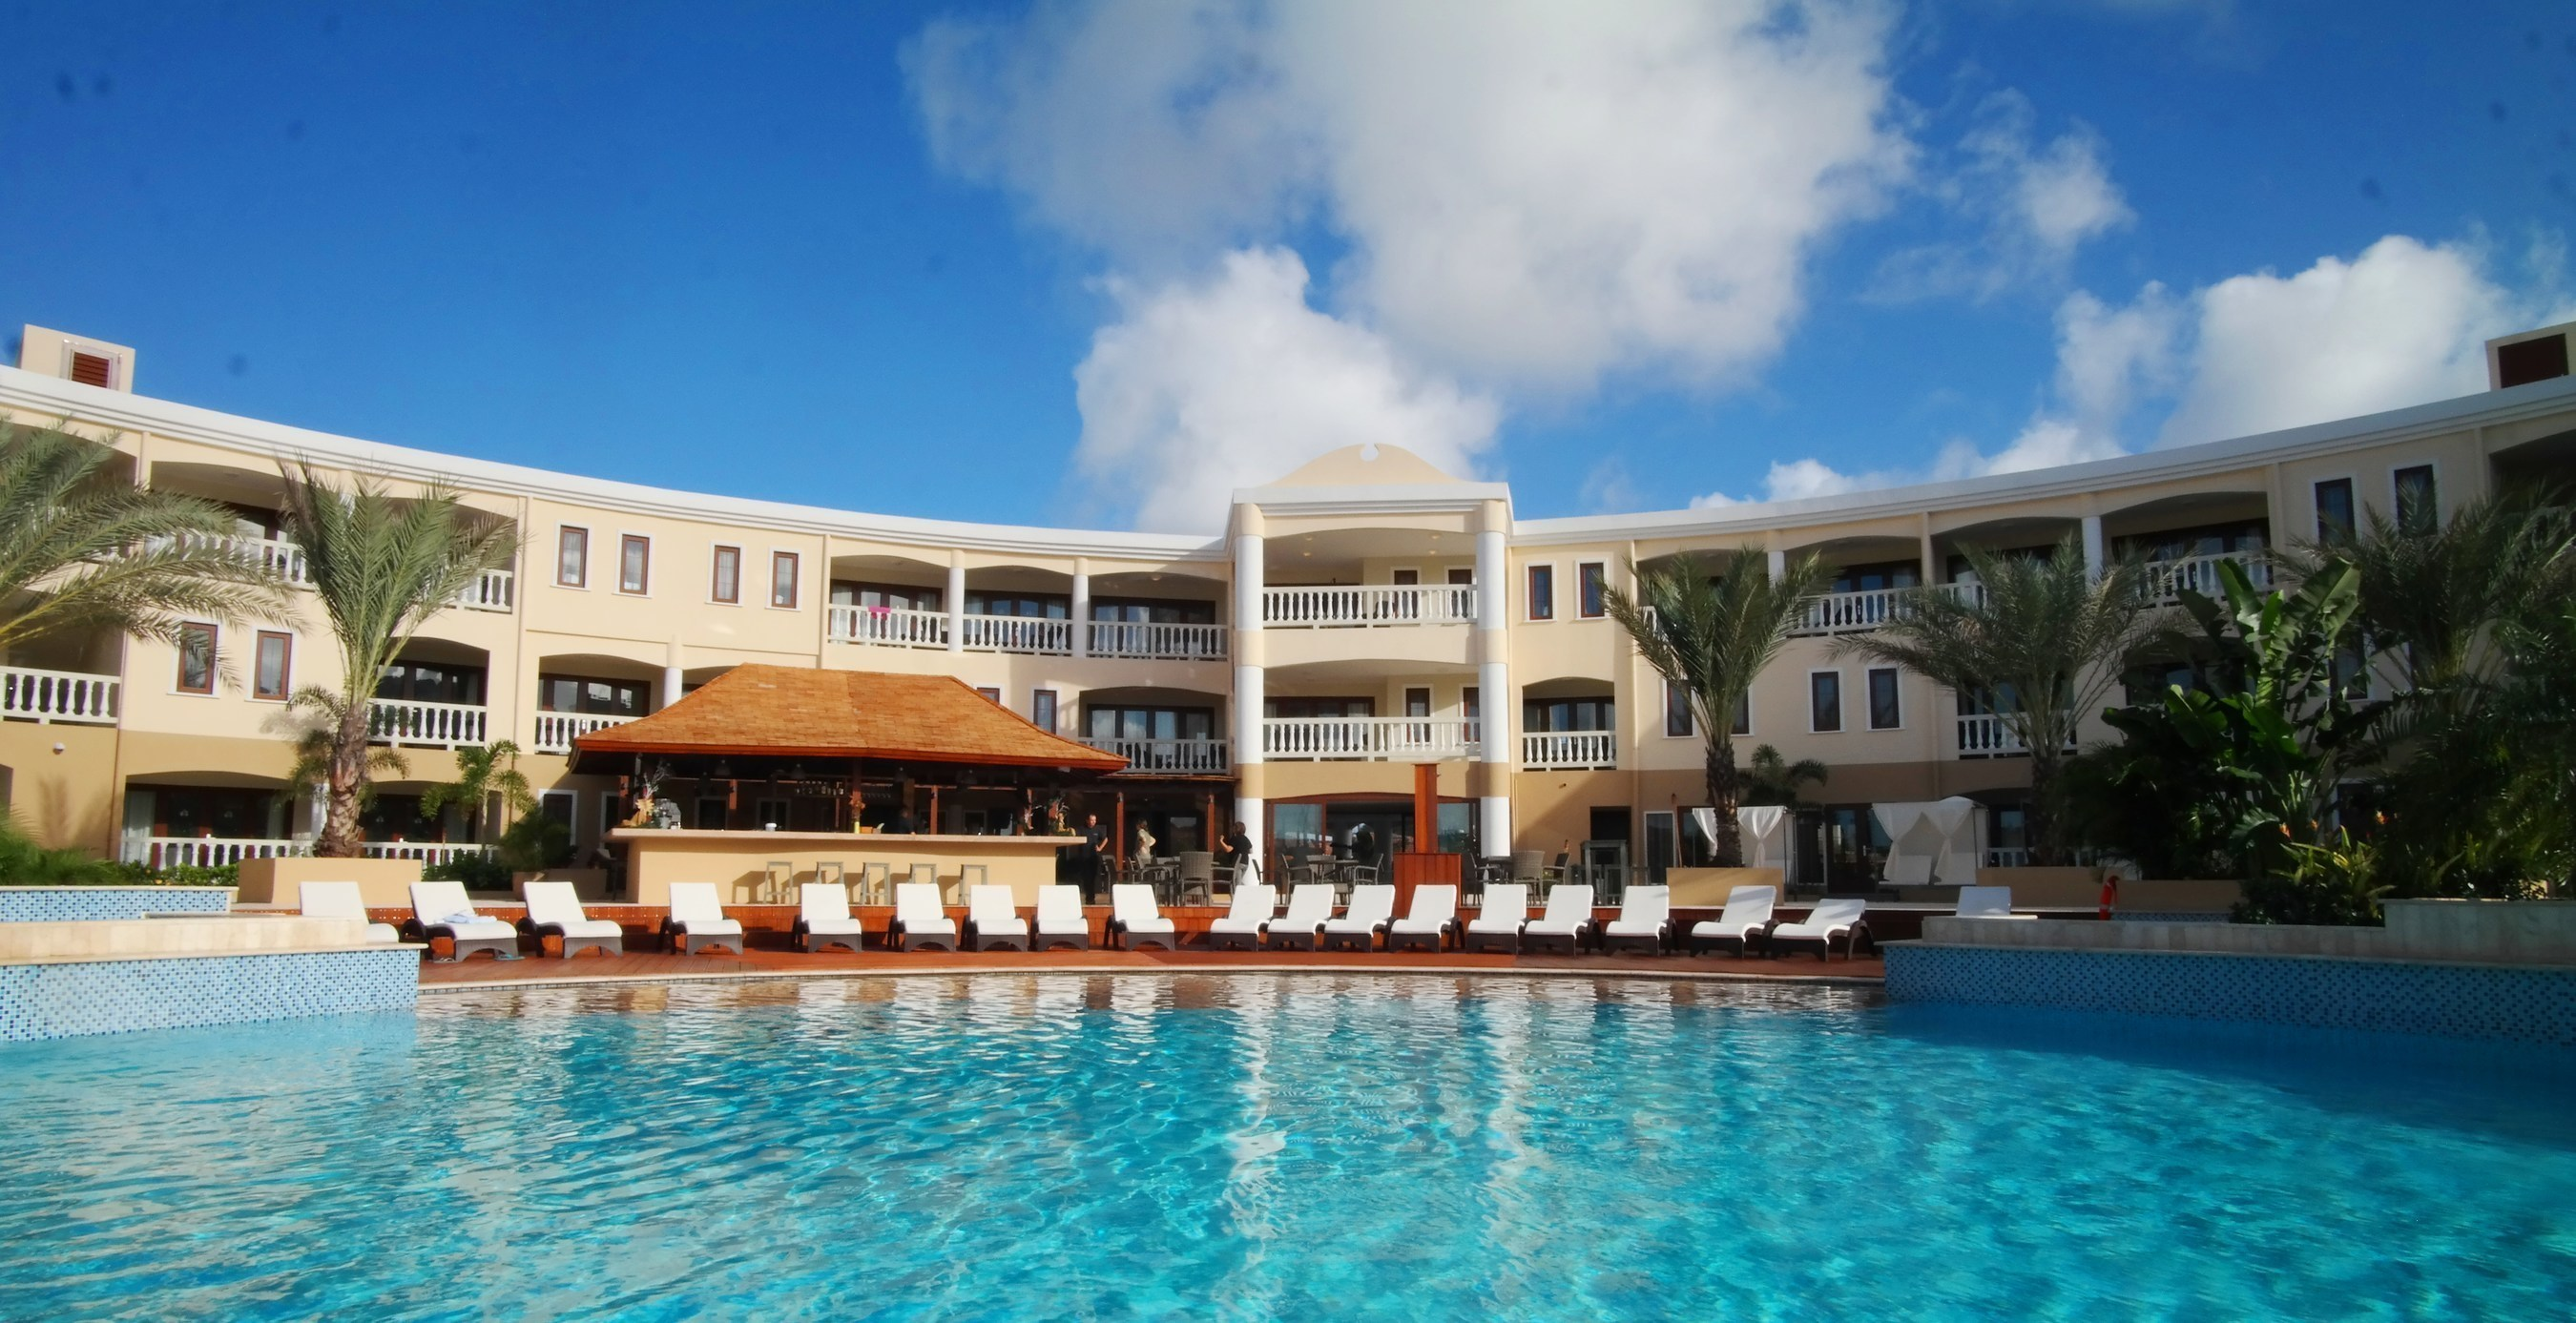 ACOYA Hotel Suites & Villas, an Ascend Hotel Collection Member in Curacao